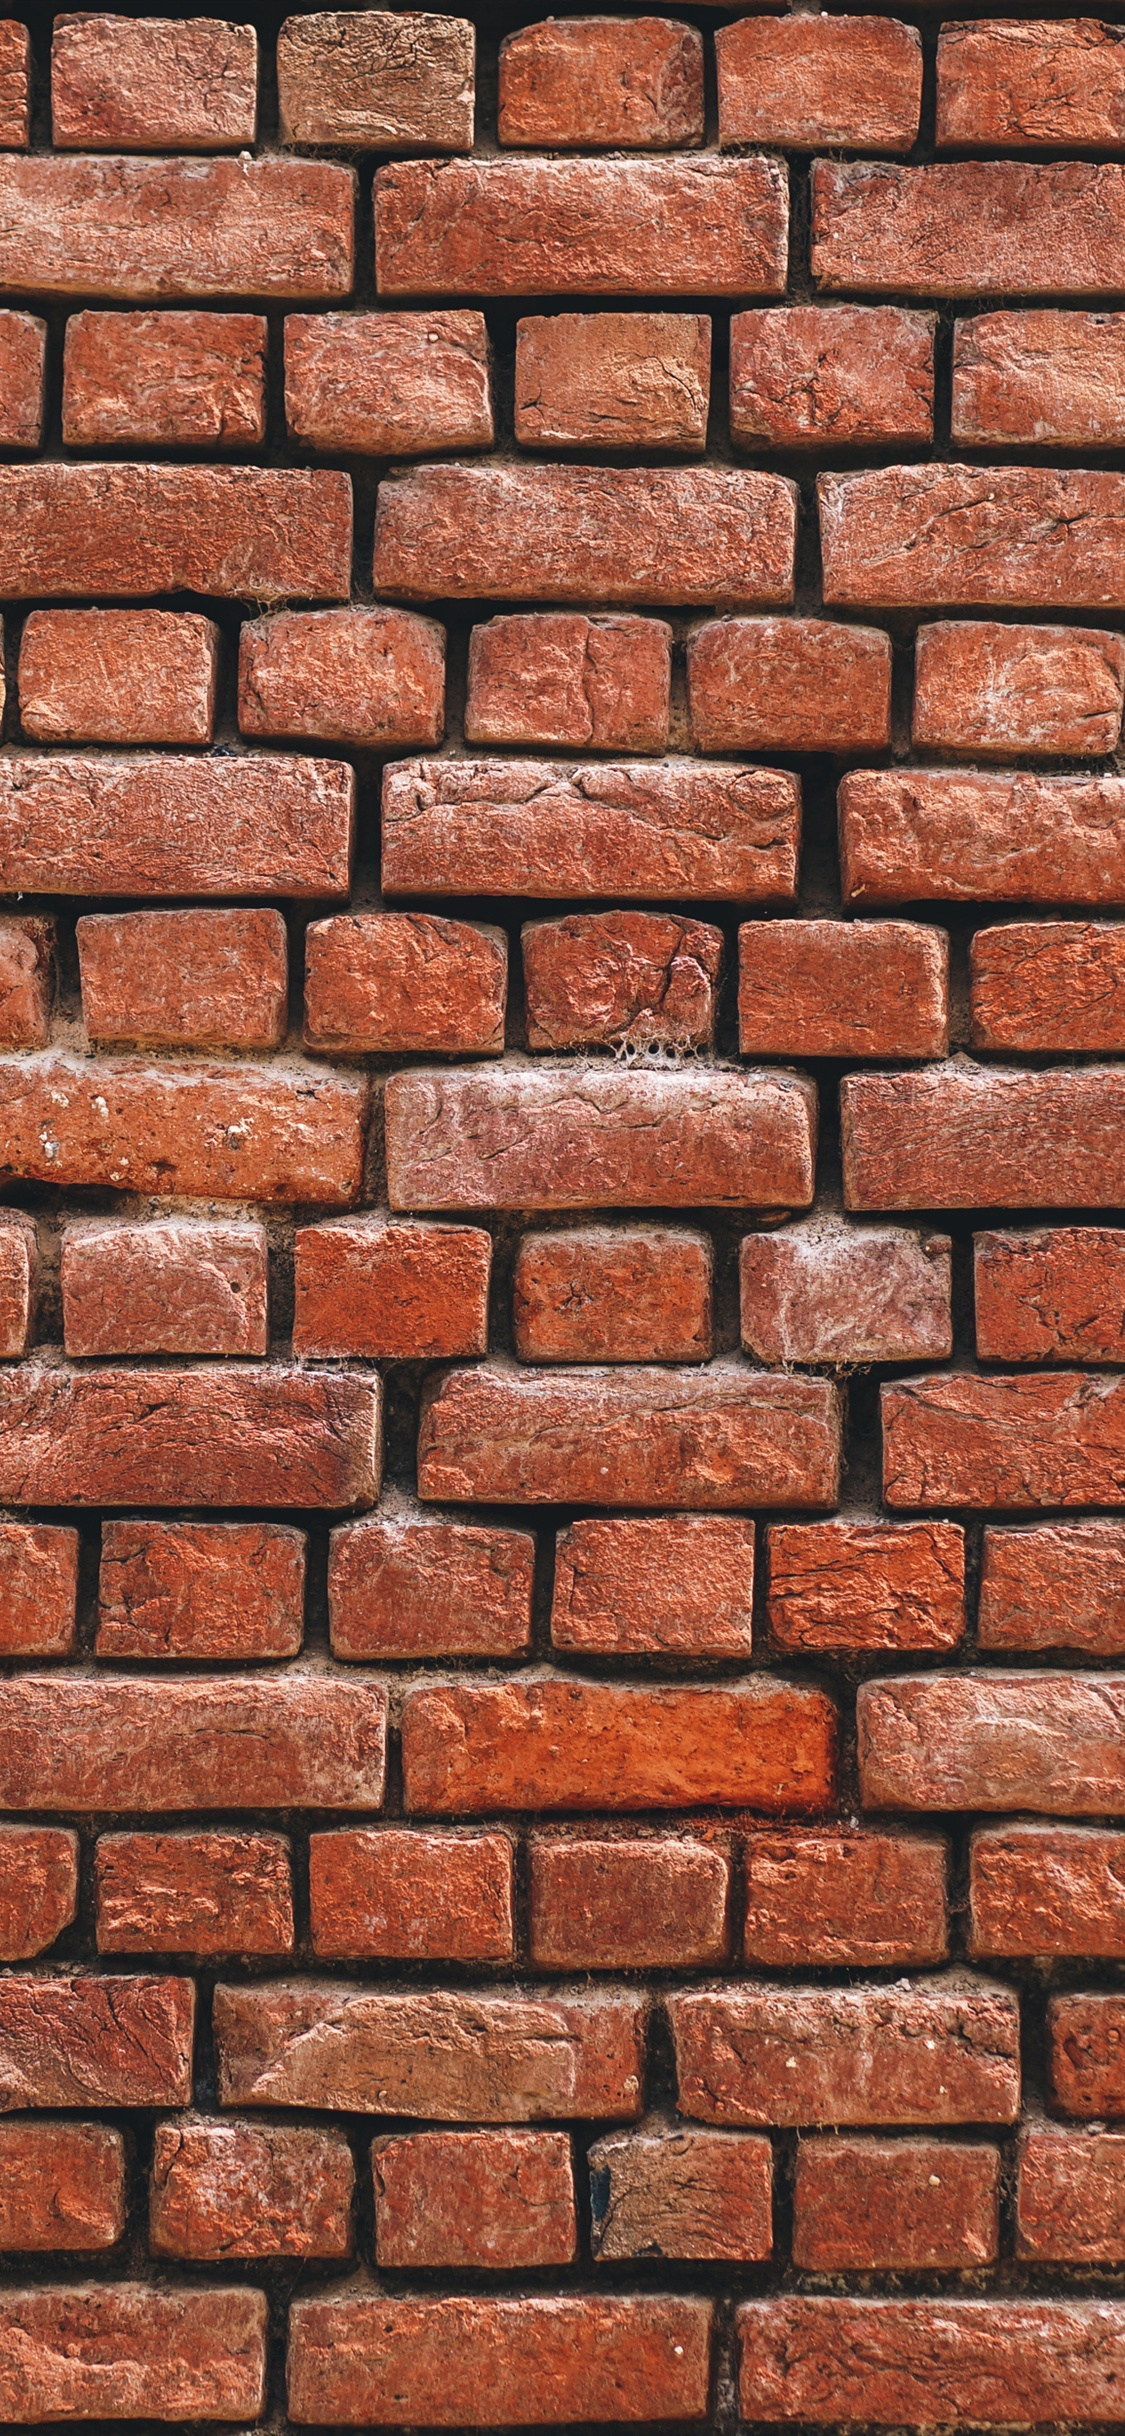 Brick wall background iPhone X 8,7,6,5,4,3GS wallpaper ...